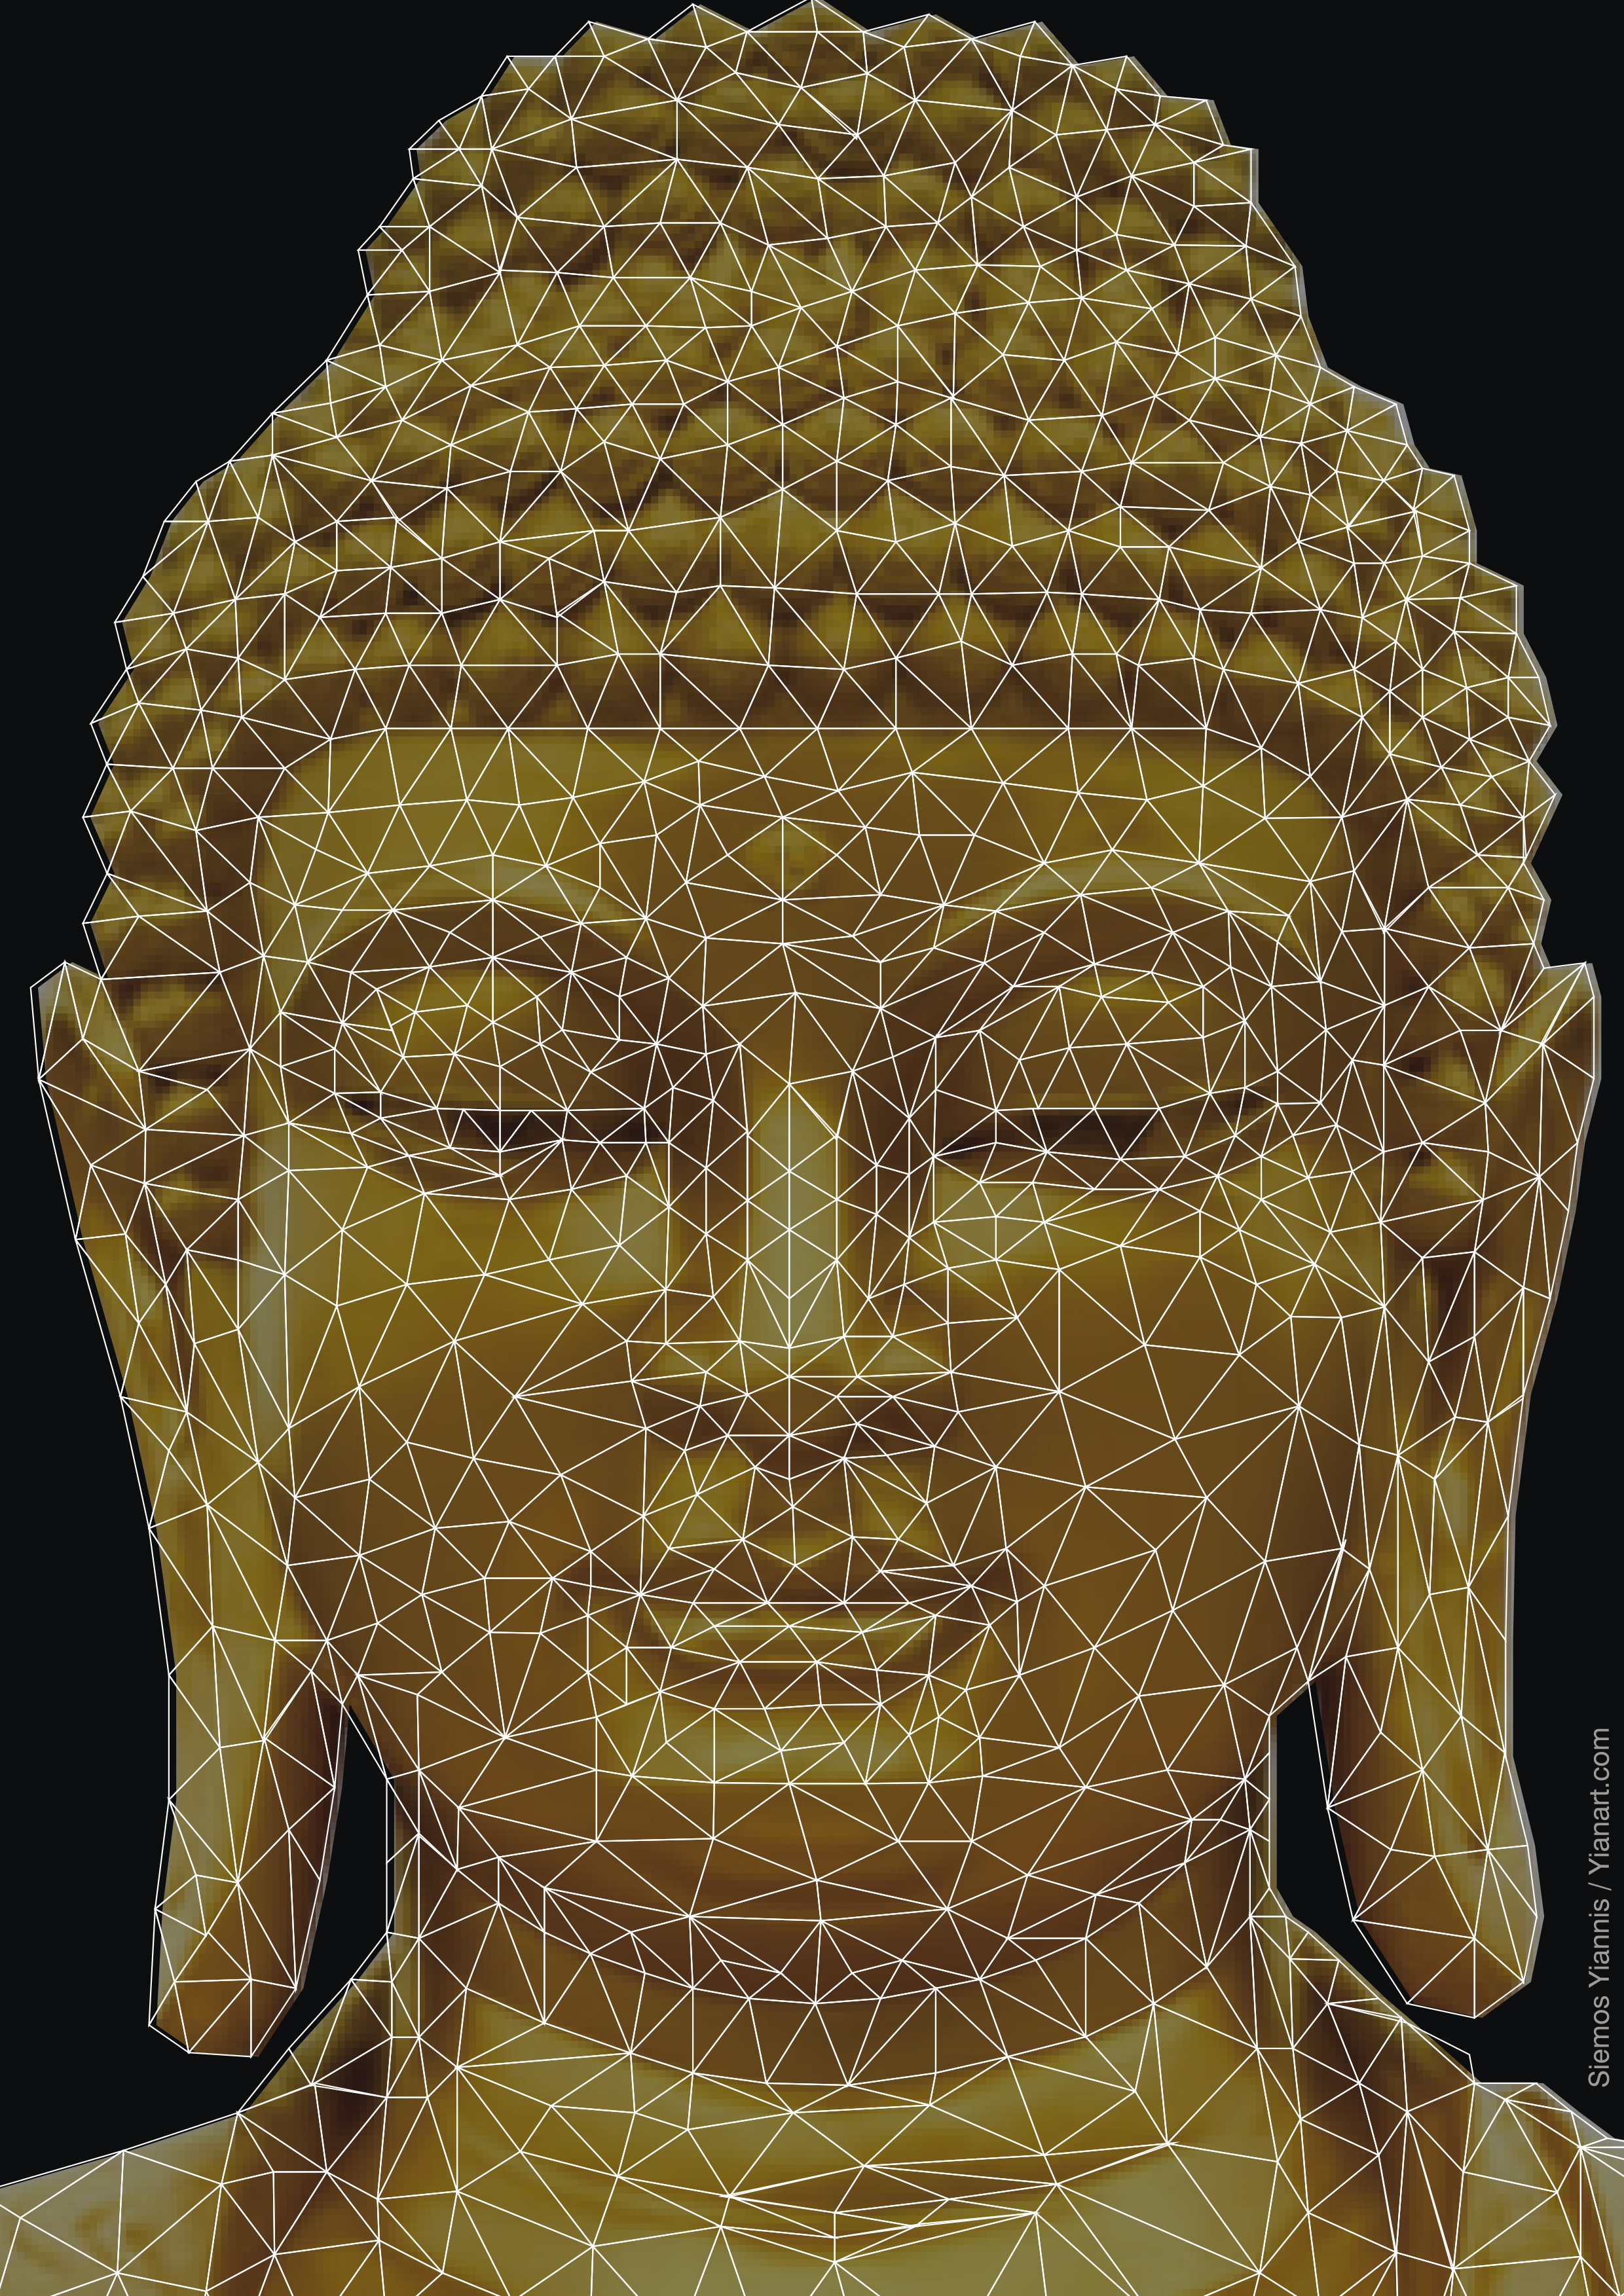 Buddha_Closed_wired_Yianart.com